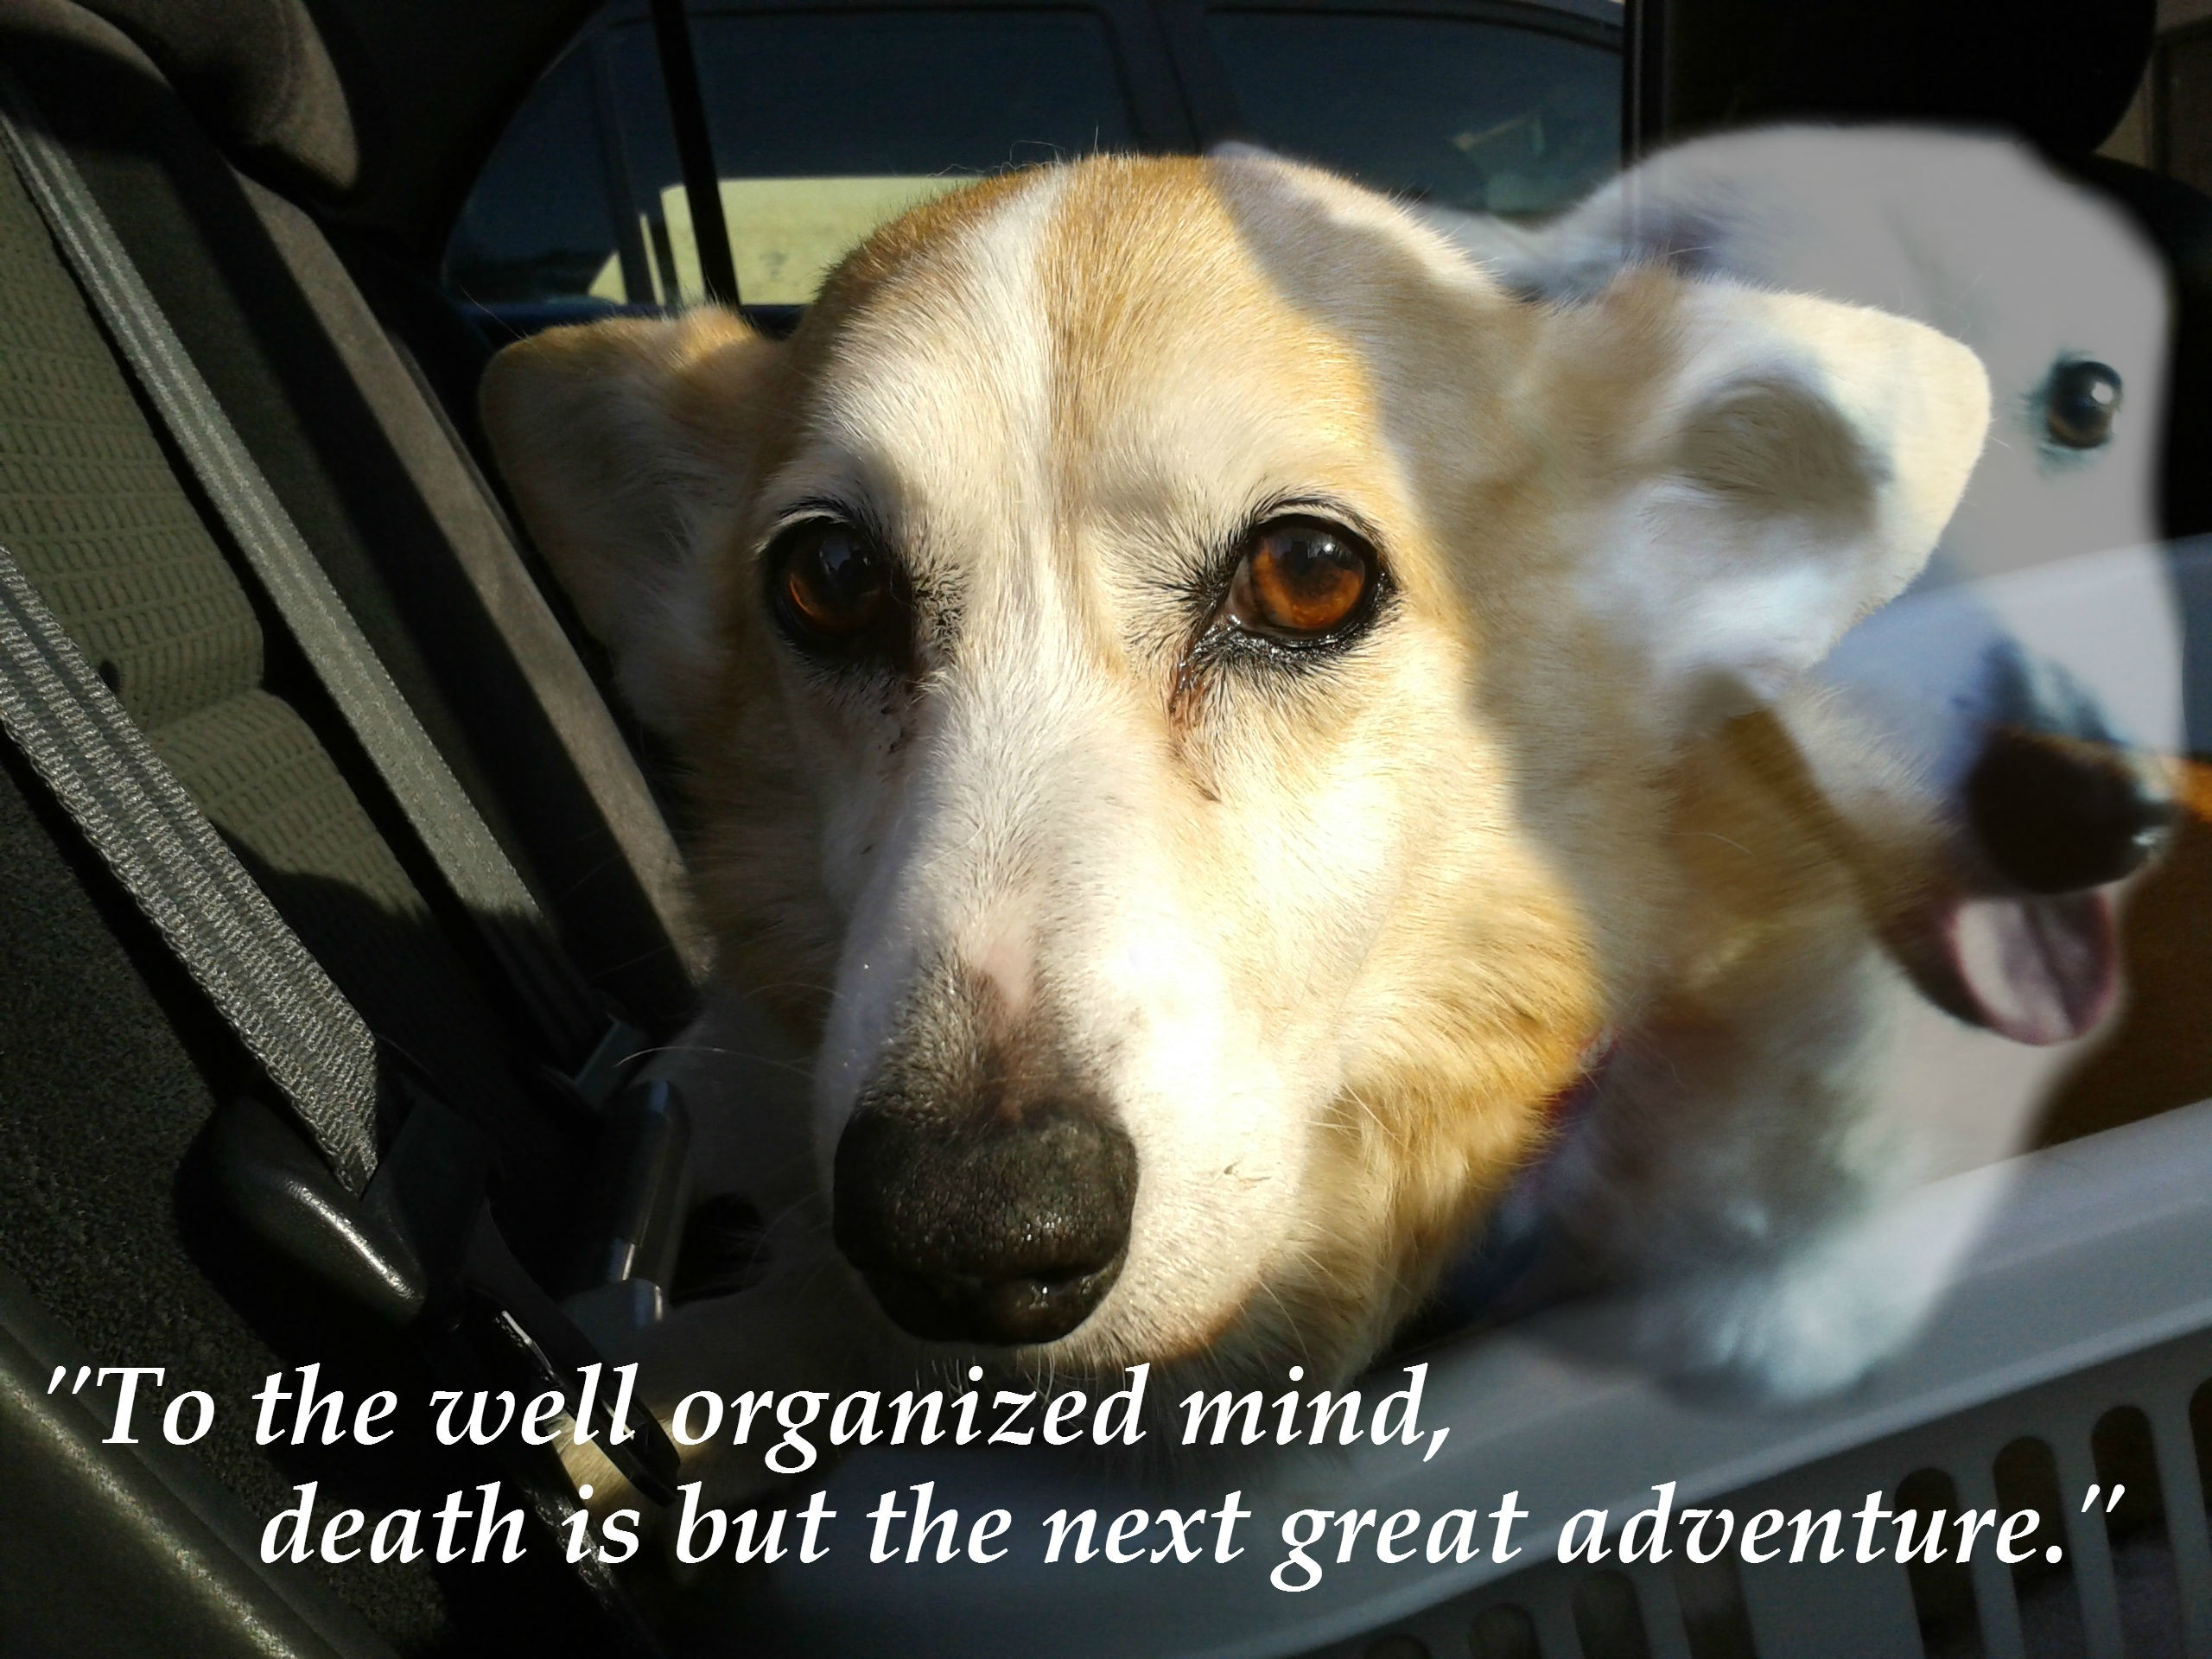 saying goodbye to dog quotes  quotesgram